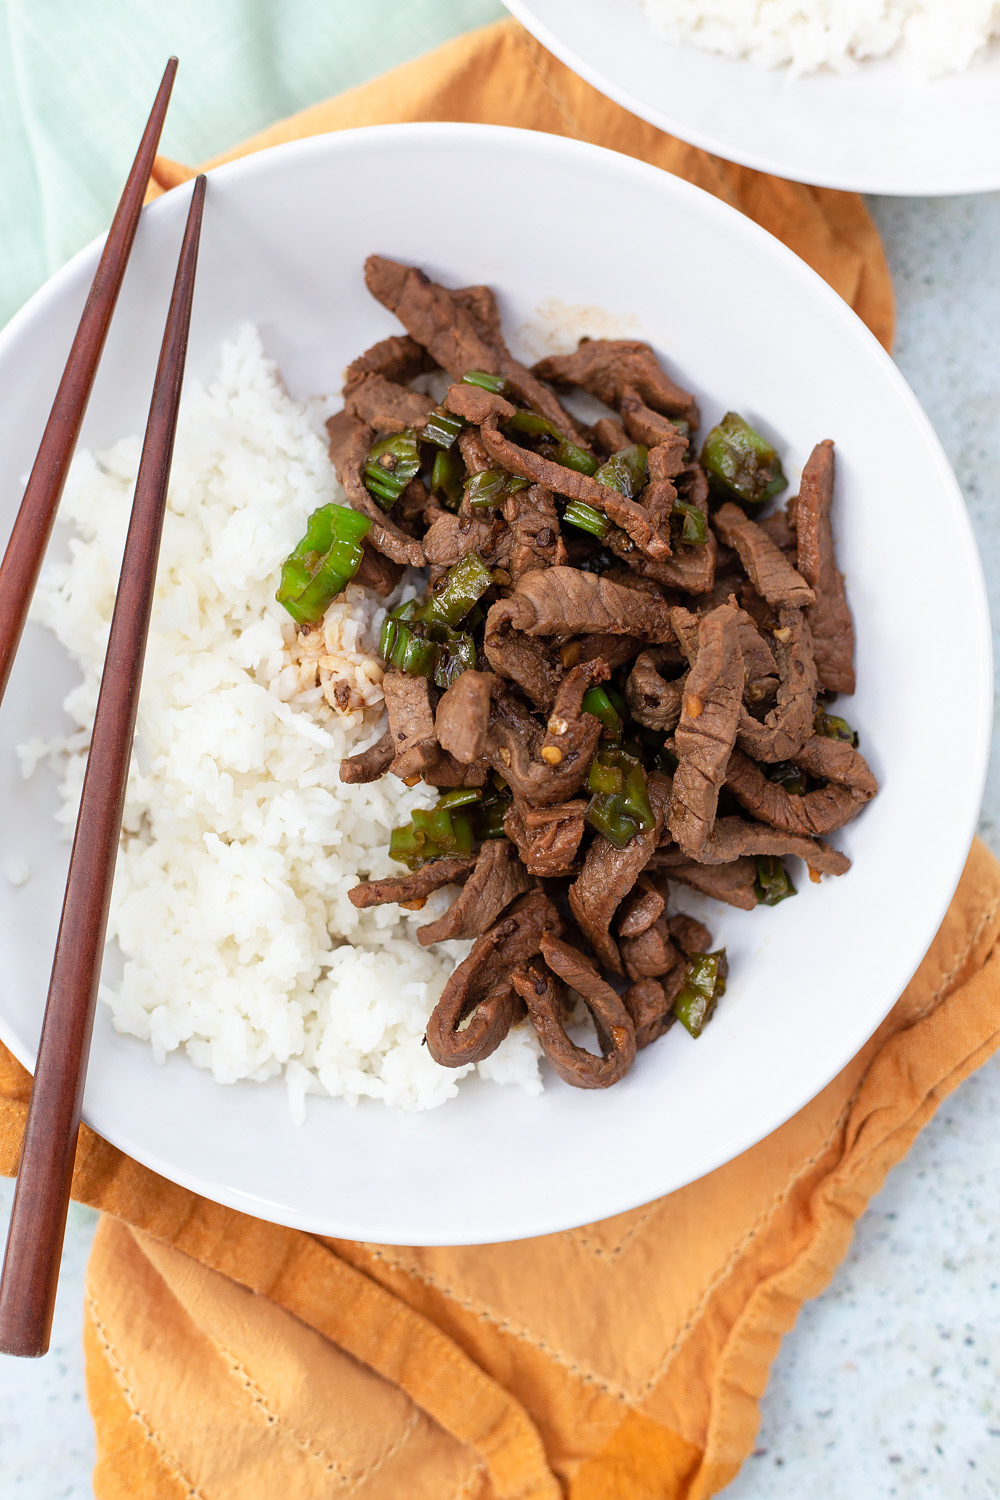 steak and shishito peppers with chopsticks